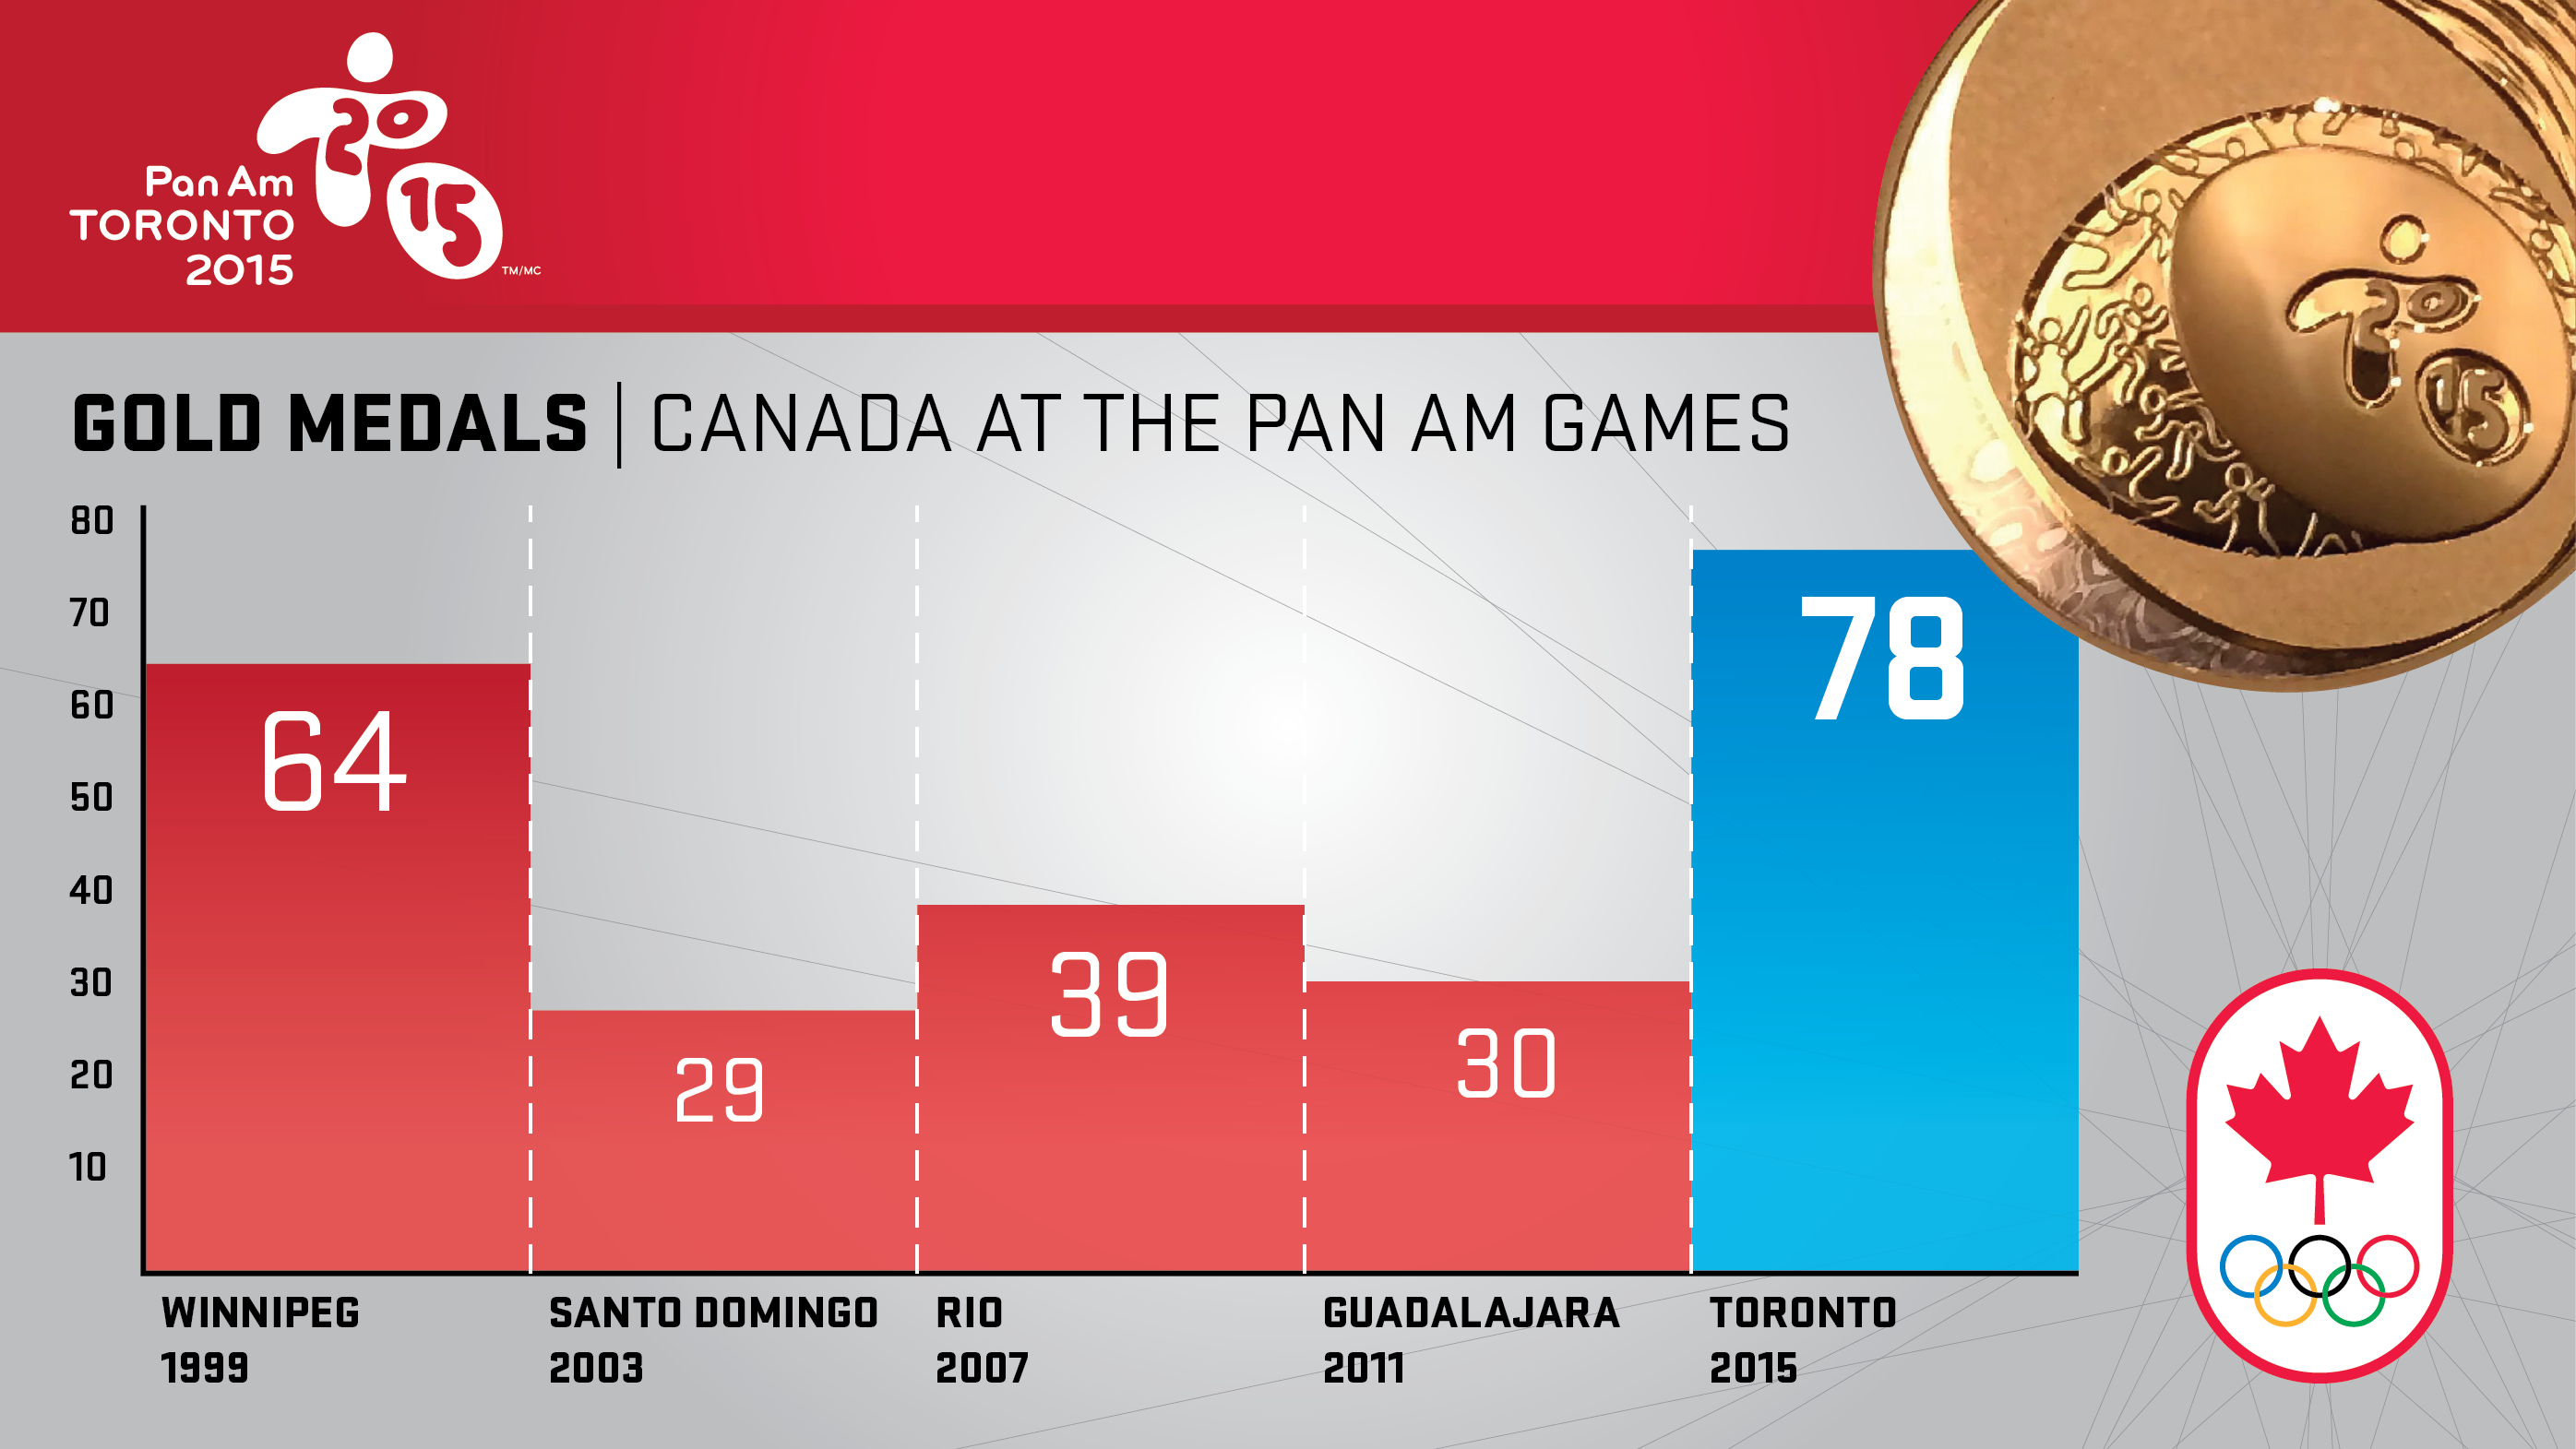 78 - Gold medal record